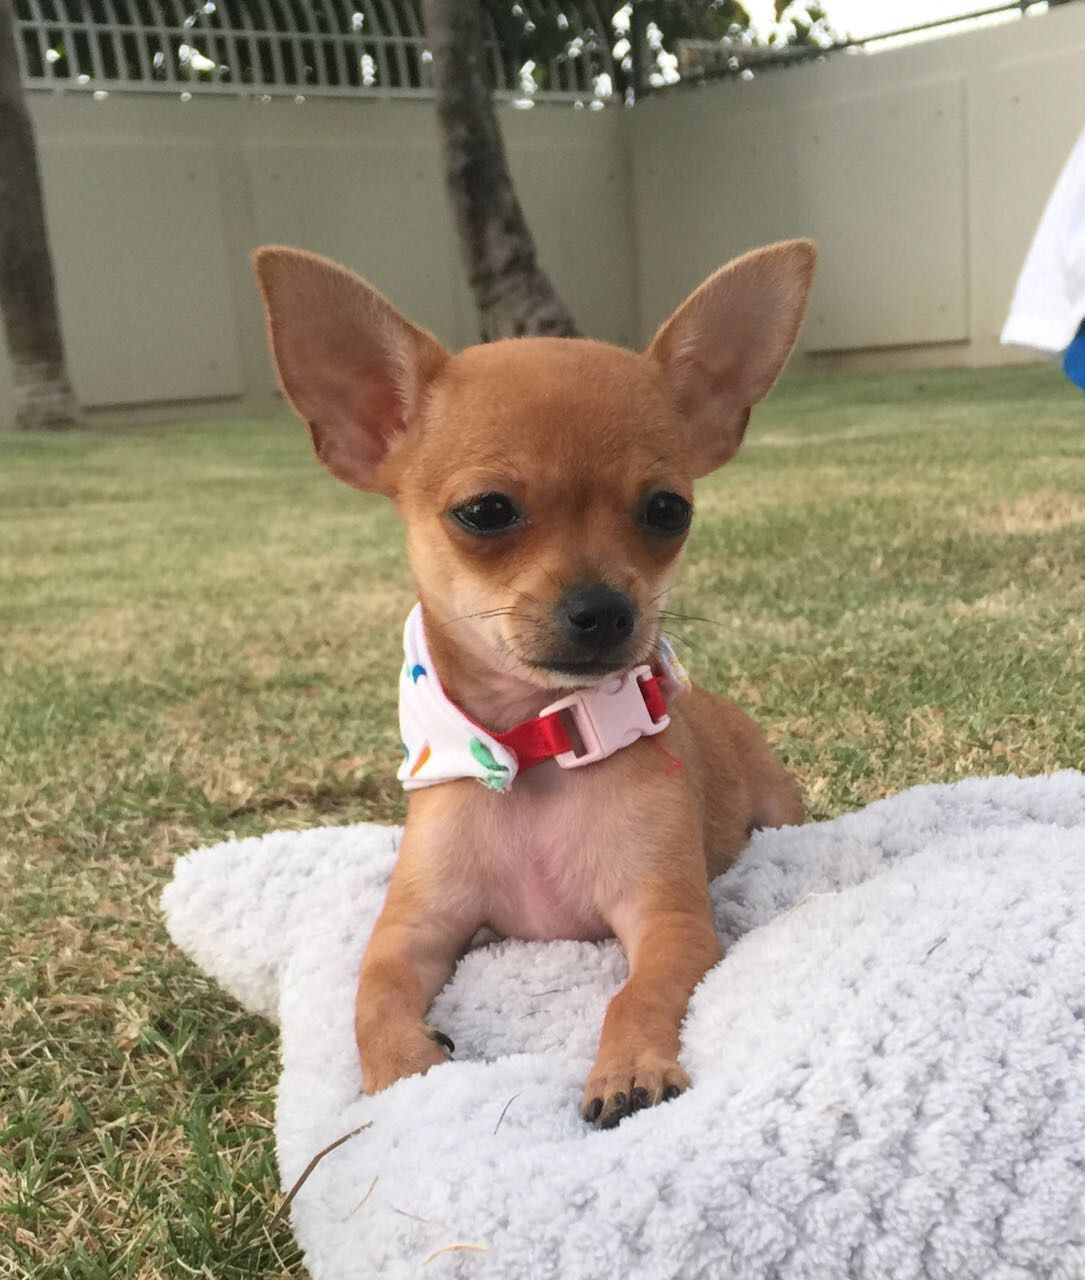 Teacup Brown Chihuahua Enjoying A Sunny Day Pua Chihuahua Puppies Adorable Cute Animals Cutest Puppy Ever